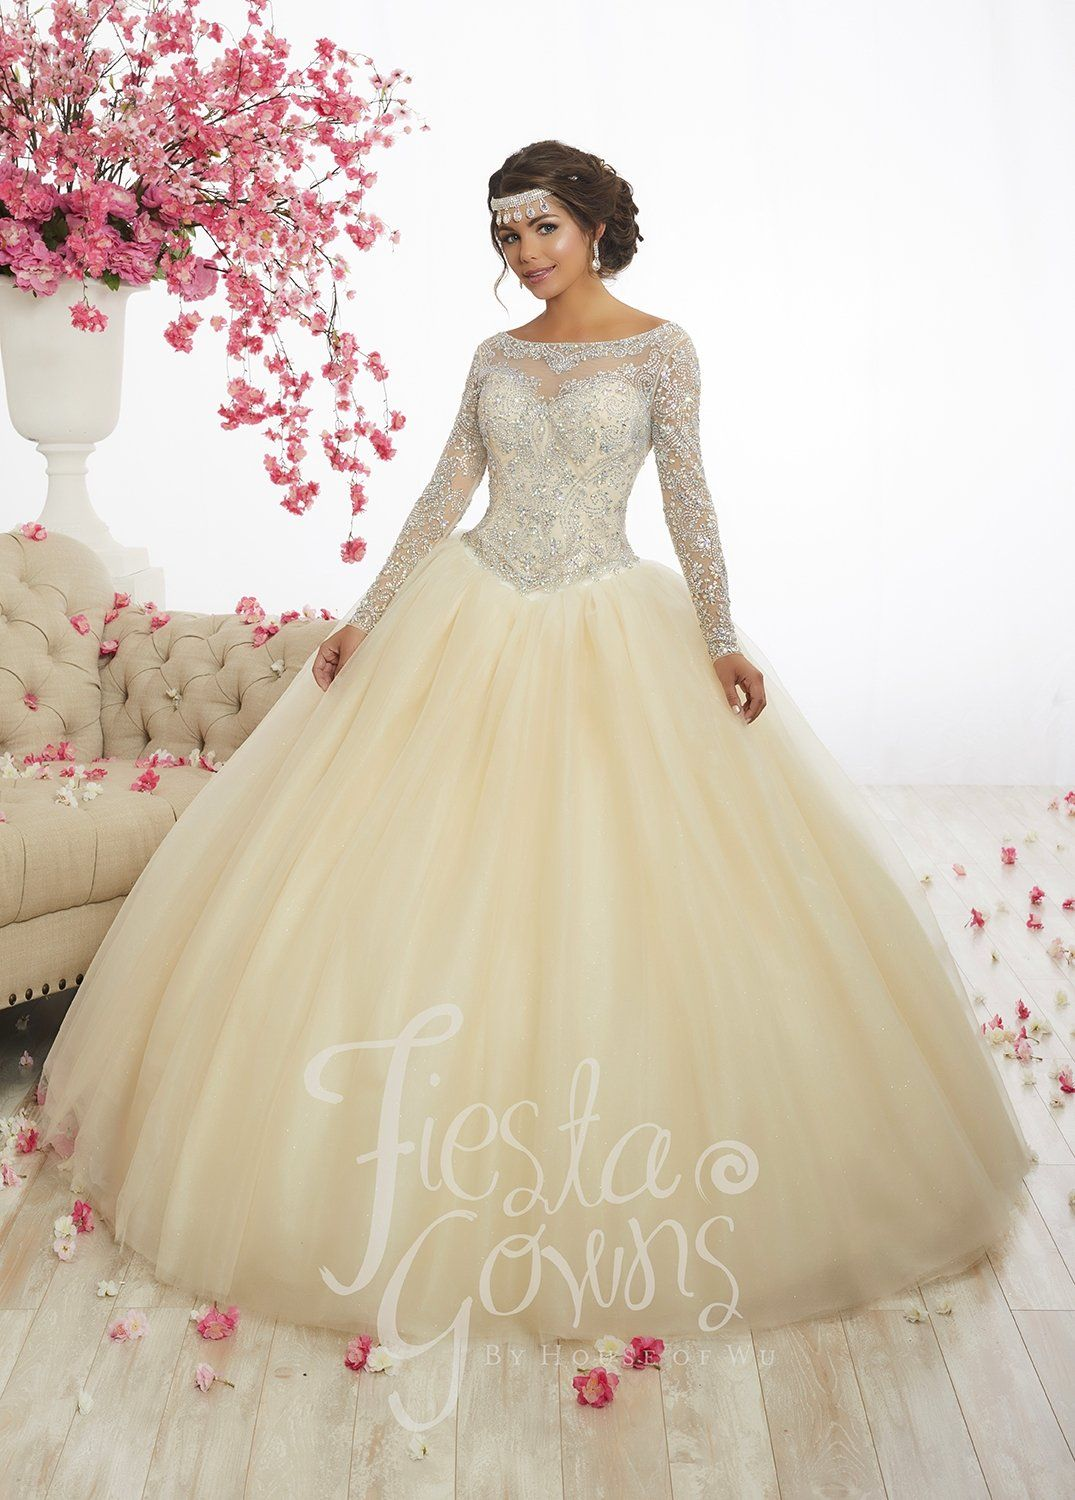 c8a73a43115 Beaded Long-Sleeve Quinceanera Dress by Fiesta Gowns 56347 in 2019 ...